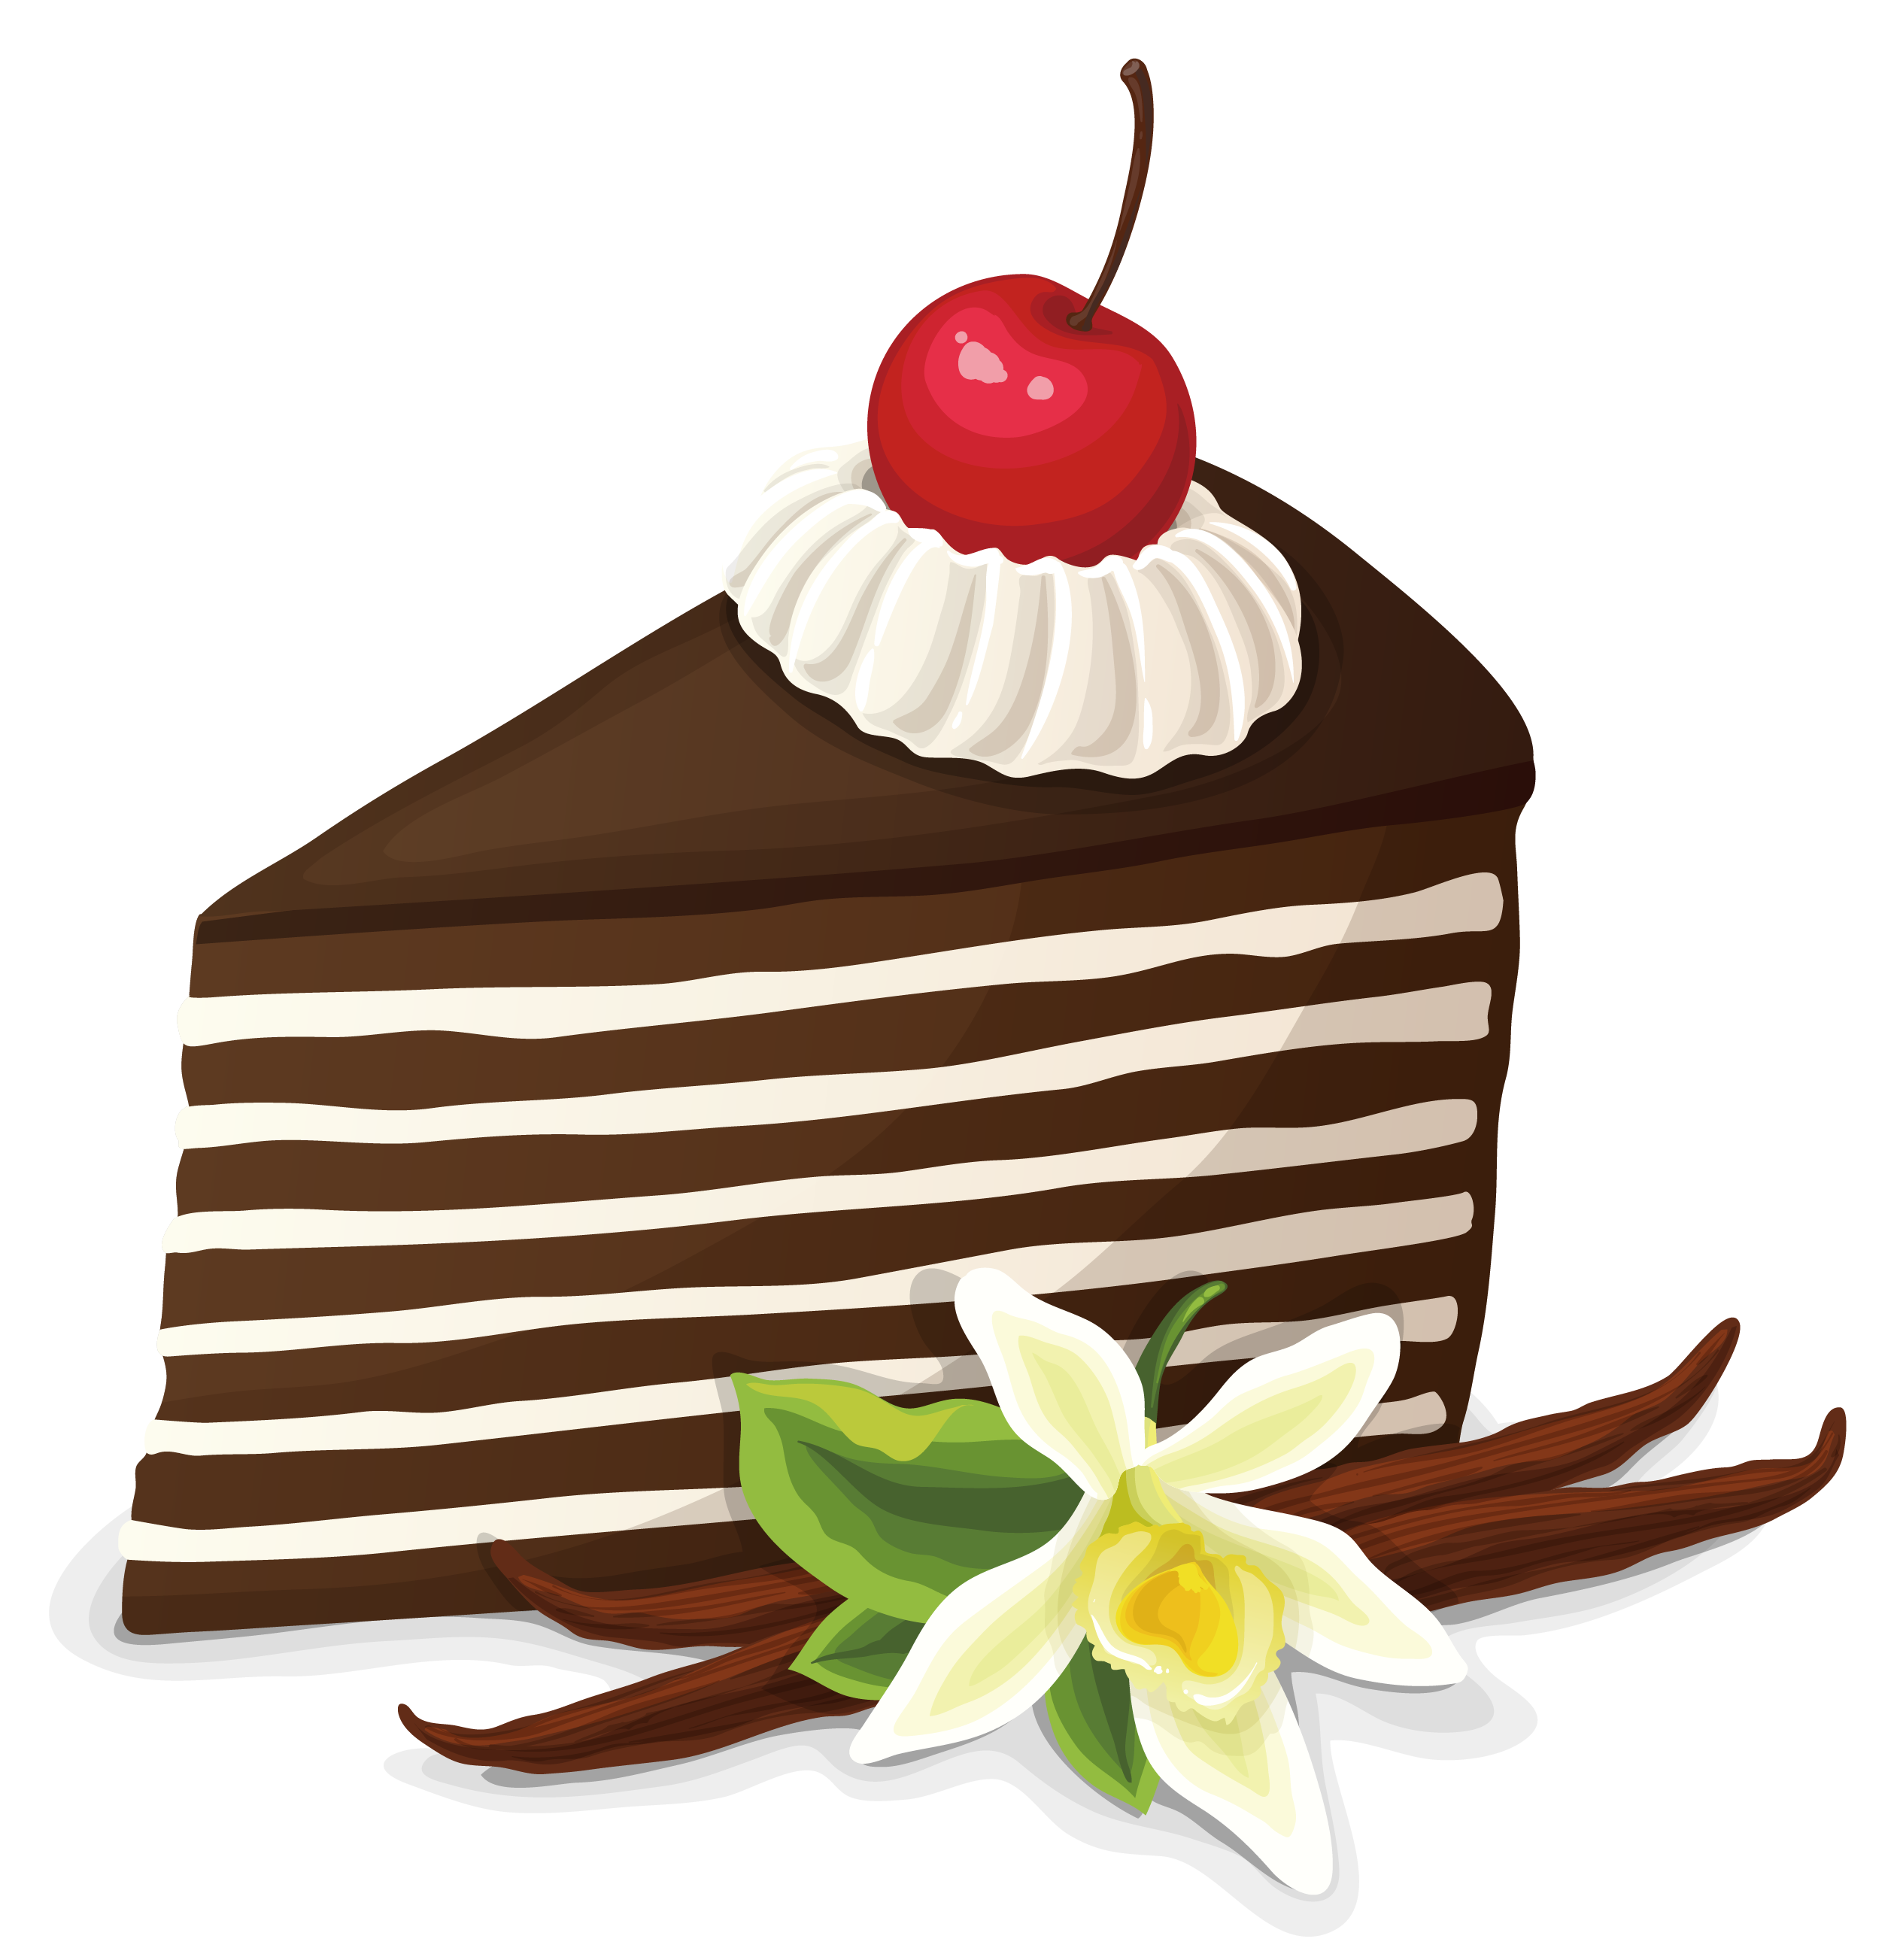 2522x2606 Layer Cake Bakery Pastry